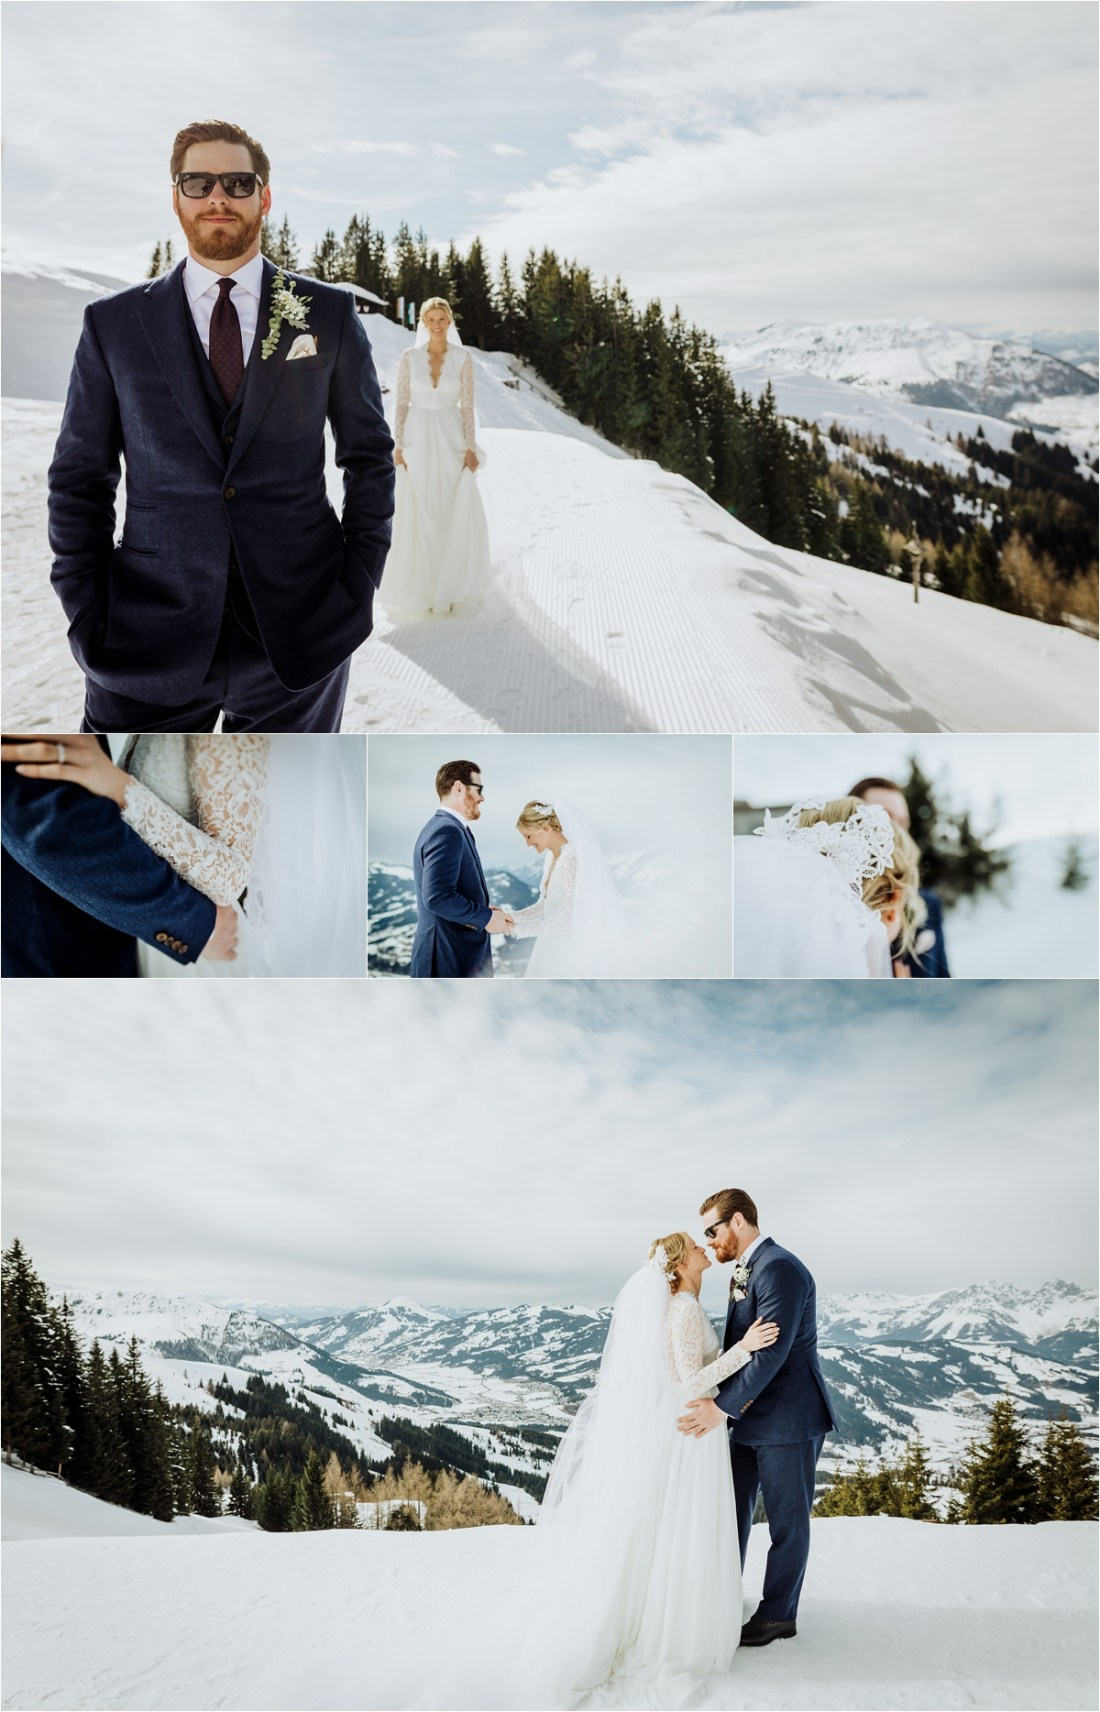 A first look in the snow in Kitzbühel Austria by Wild Connections Photography